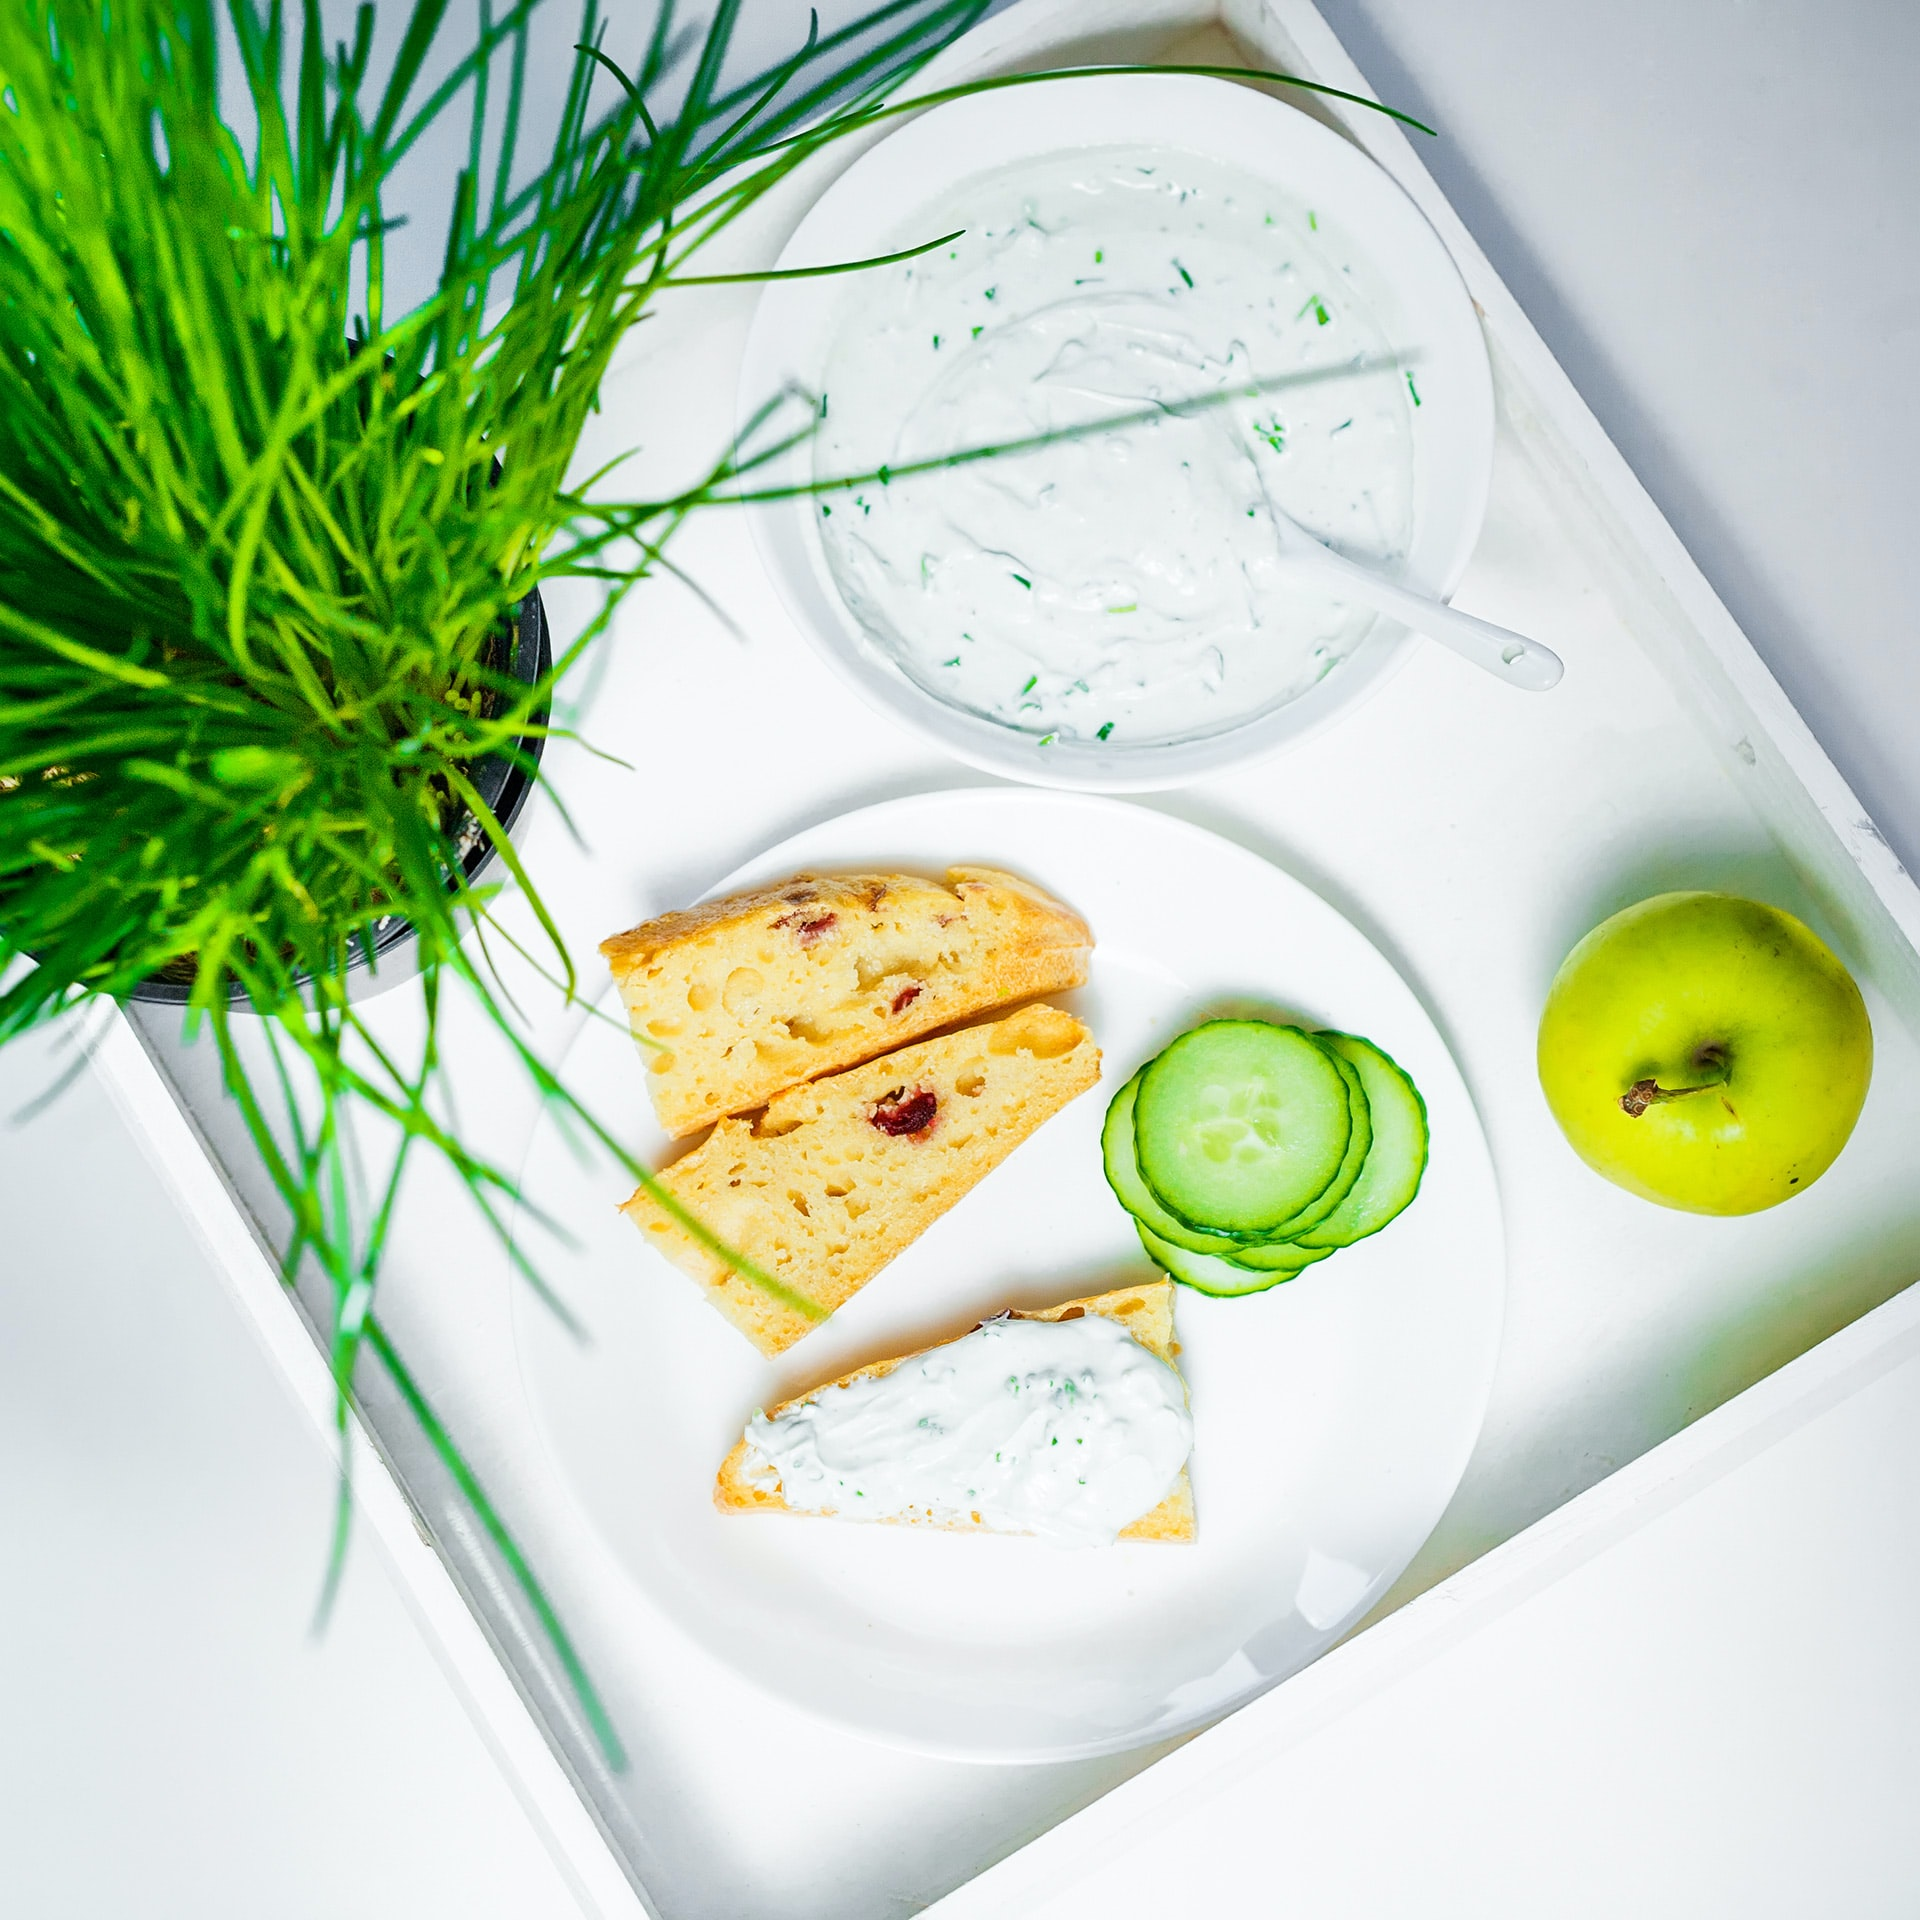 bread on white plate